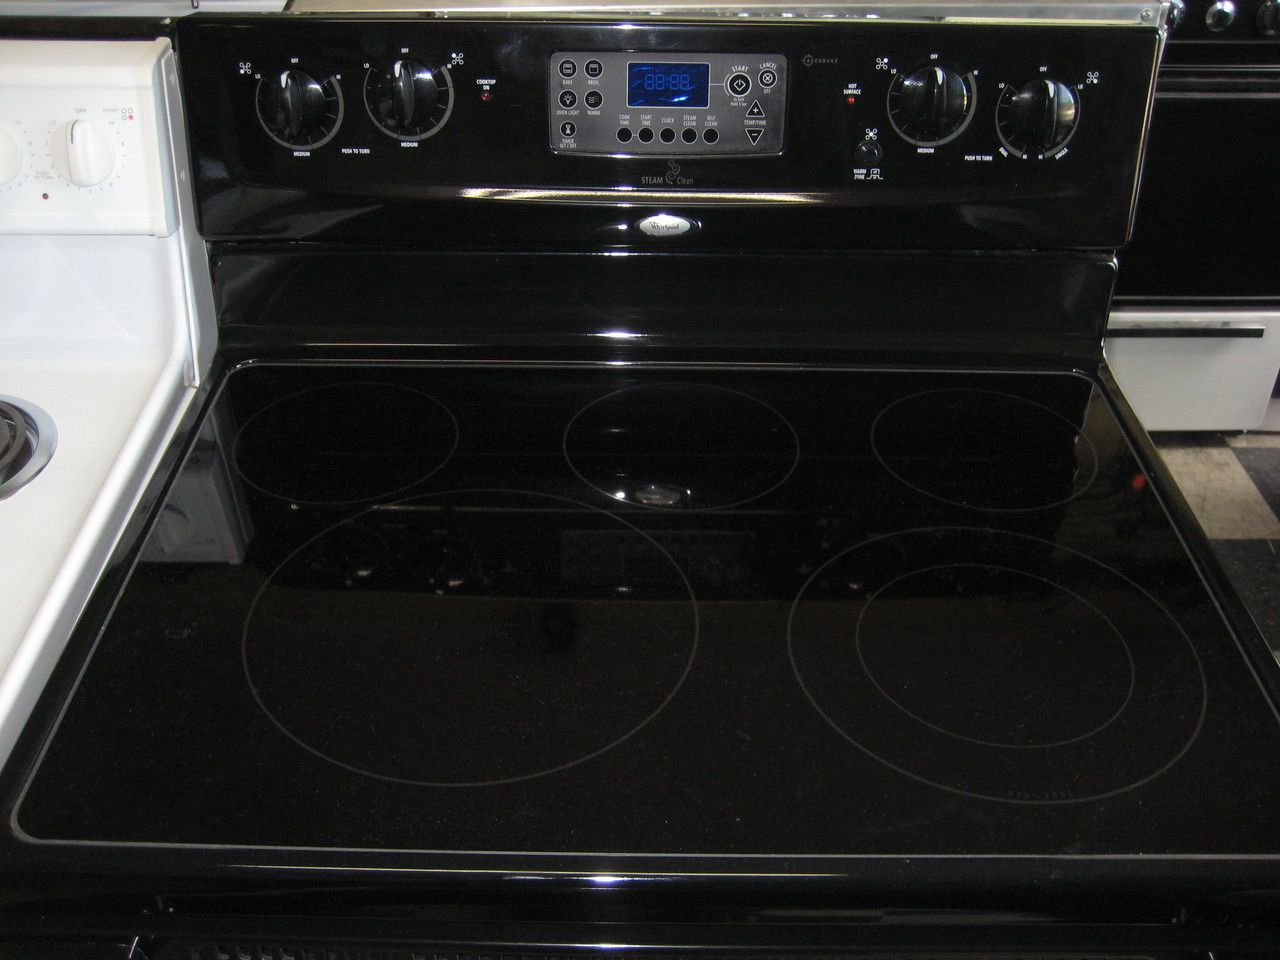 Appliance city whirlpool 30 inch glass top 5 burner free appliance city whirlpool 30 inch glass top 5 burner free standing electric range right front is a dual burner center is warming burner self clean and planetlyrics Choice Image